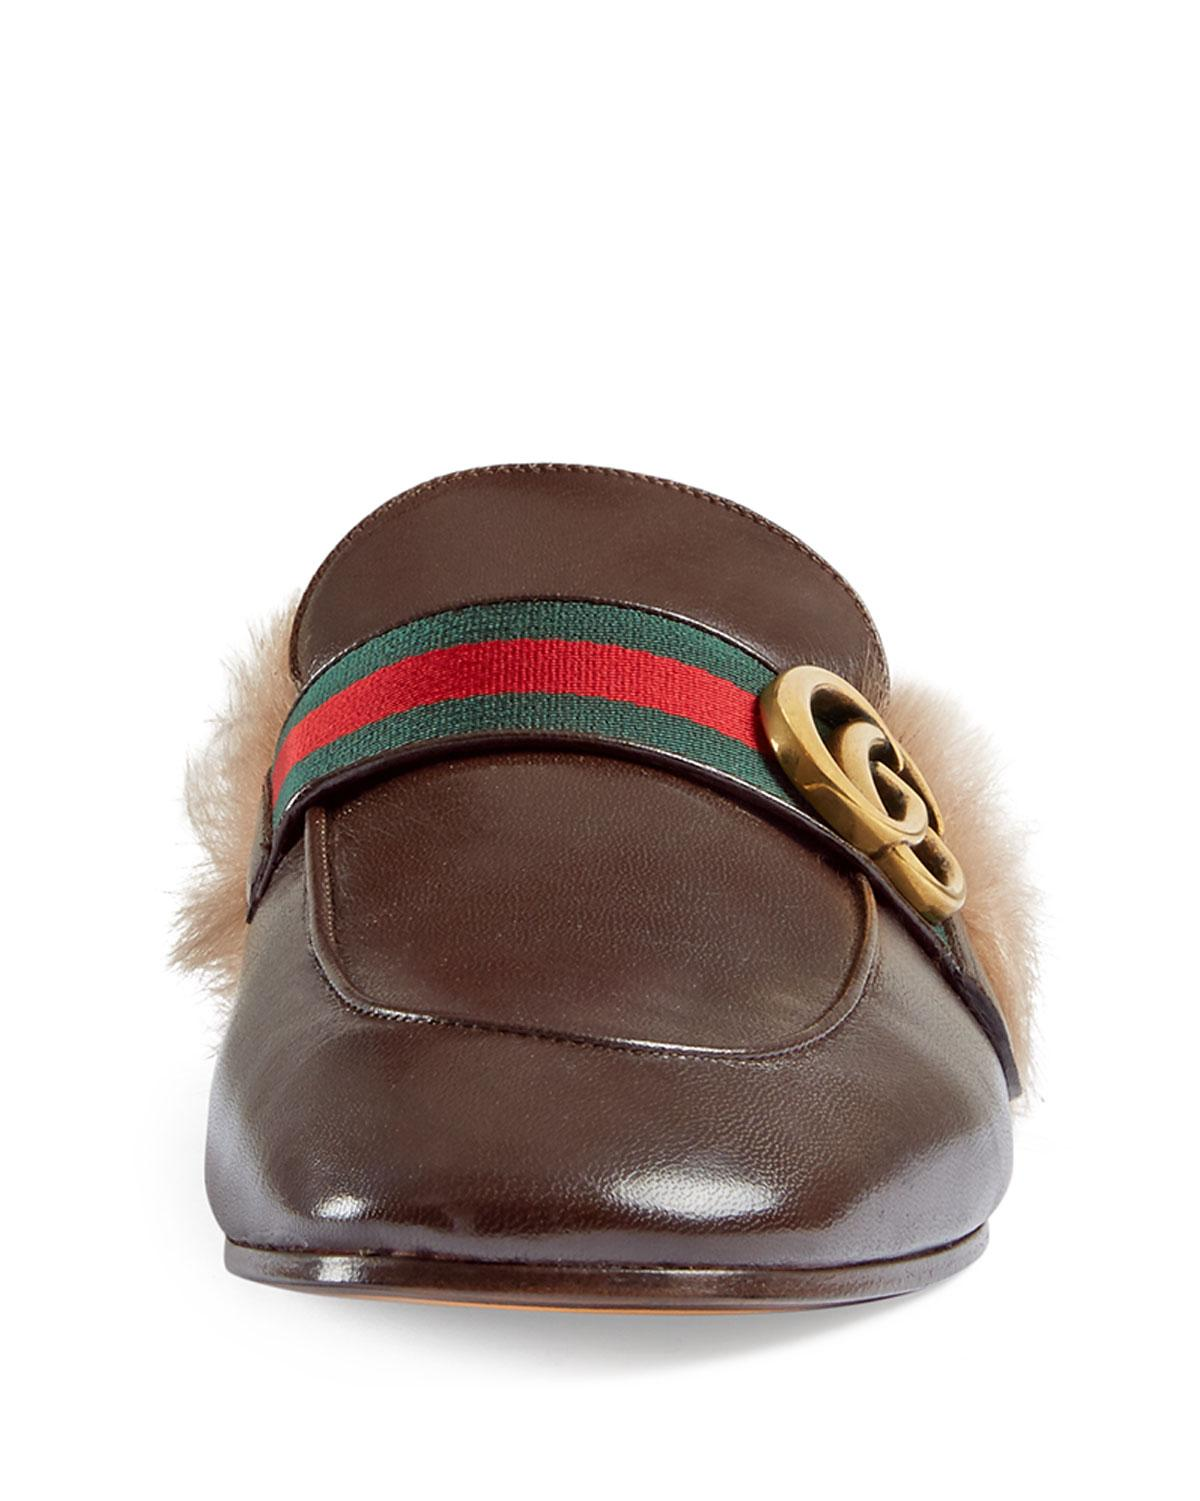 8090e3e9b5d Gucci New Princetown Leather Slippers in Brown for Men - Save 4% - Lyst